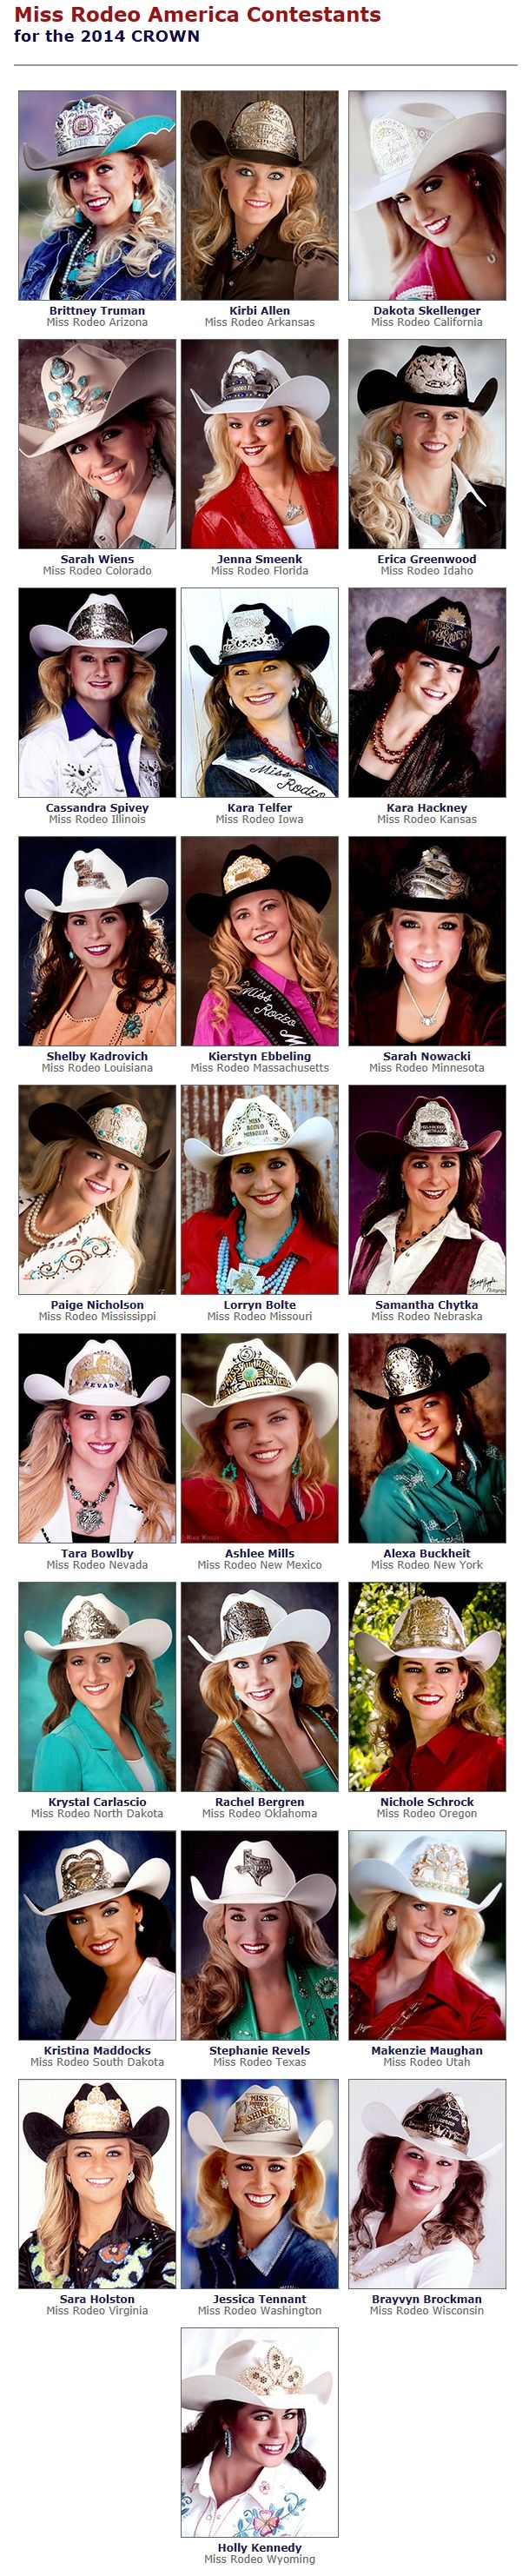 ❦ Miss Rodeo America Contestants for the 2014 Miss Rodeo America Pageant: December 2-9, 2013 at the MGM Grand Hotel & Casino. The Miss Rodeo America Pageant is held annually in conjunction with the Wrangler National Finals Rodeo. - via missrodeo.com